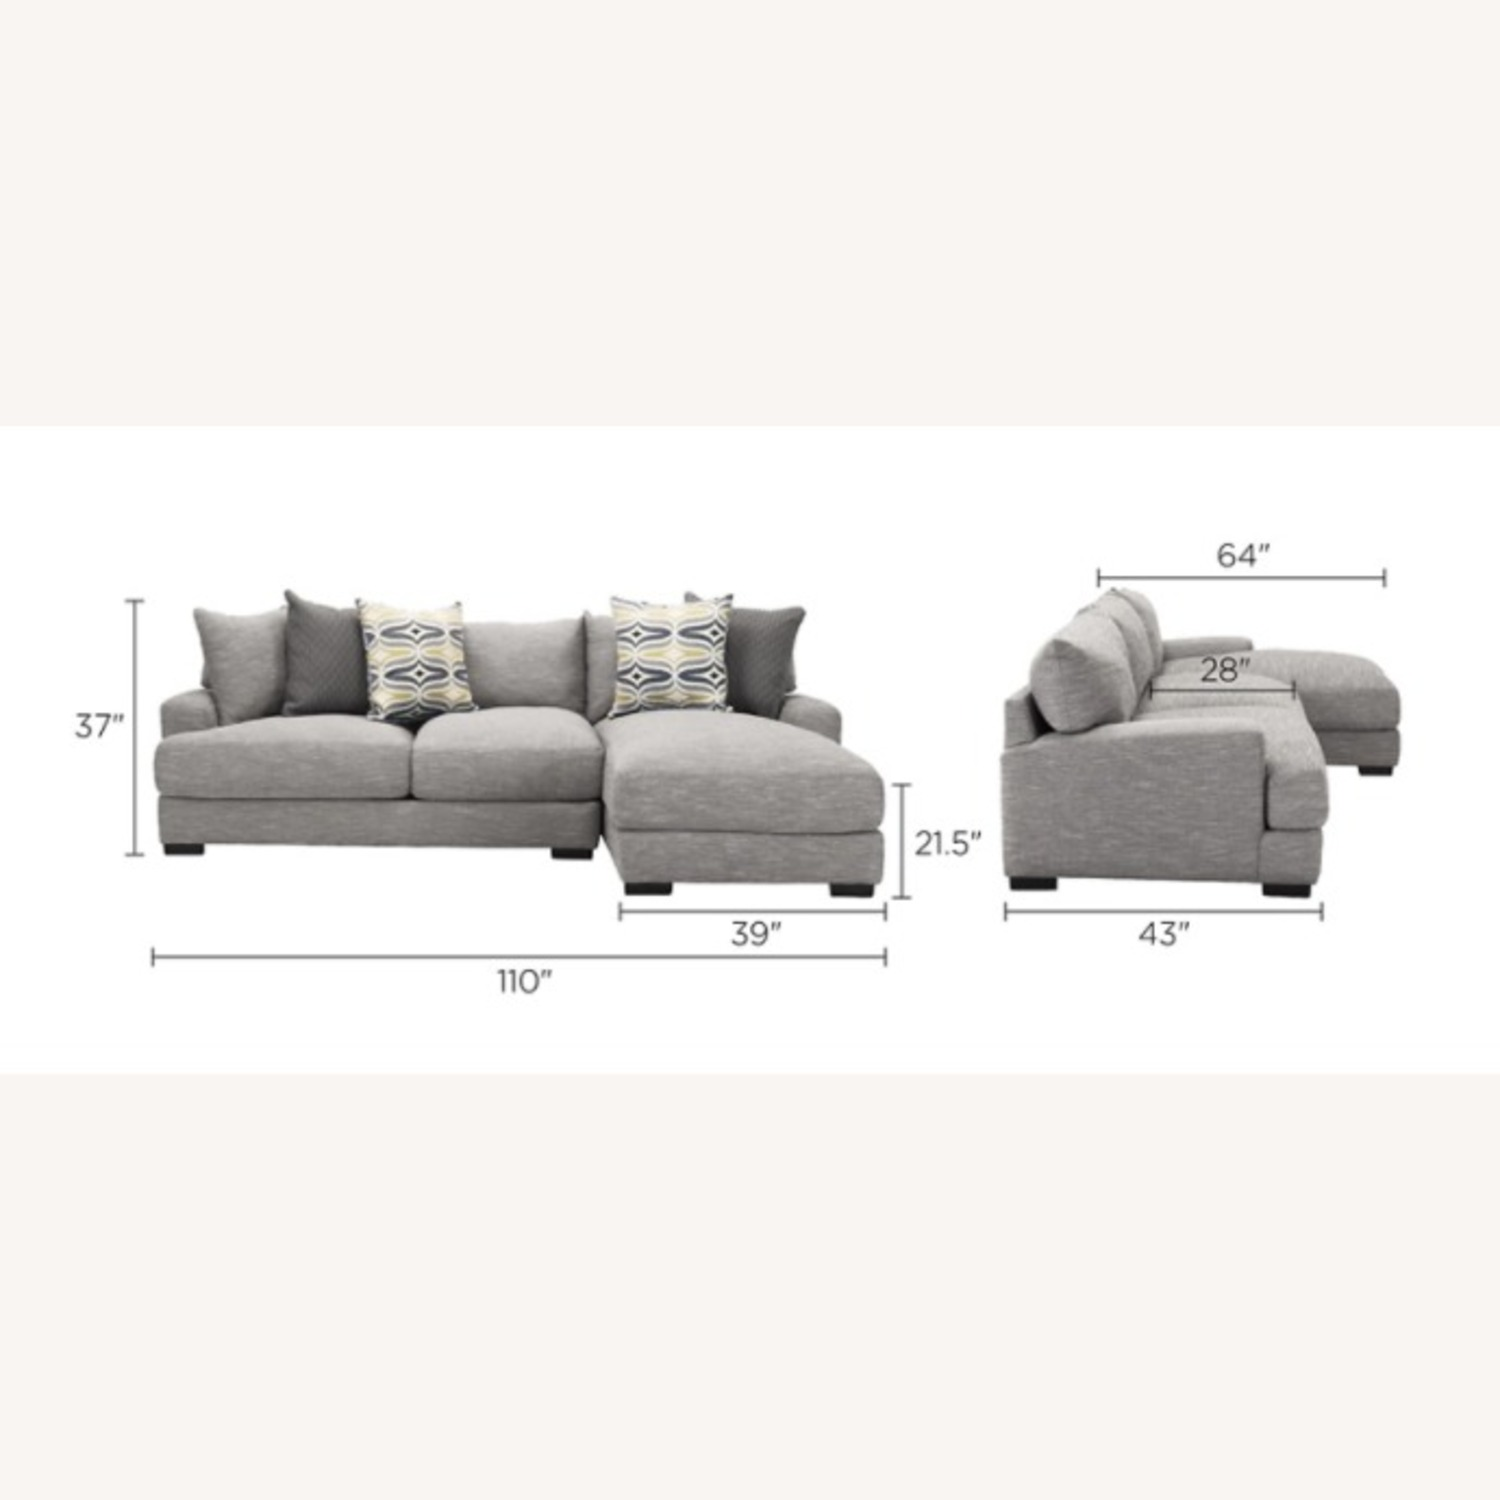 Grey 2-pc Section Sofa - image-3